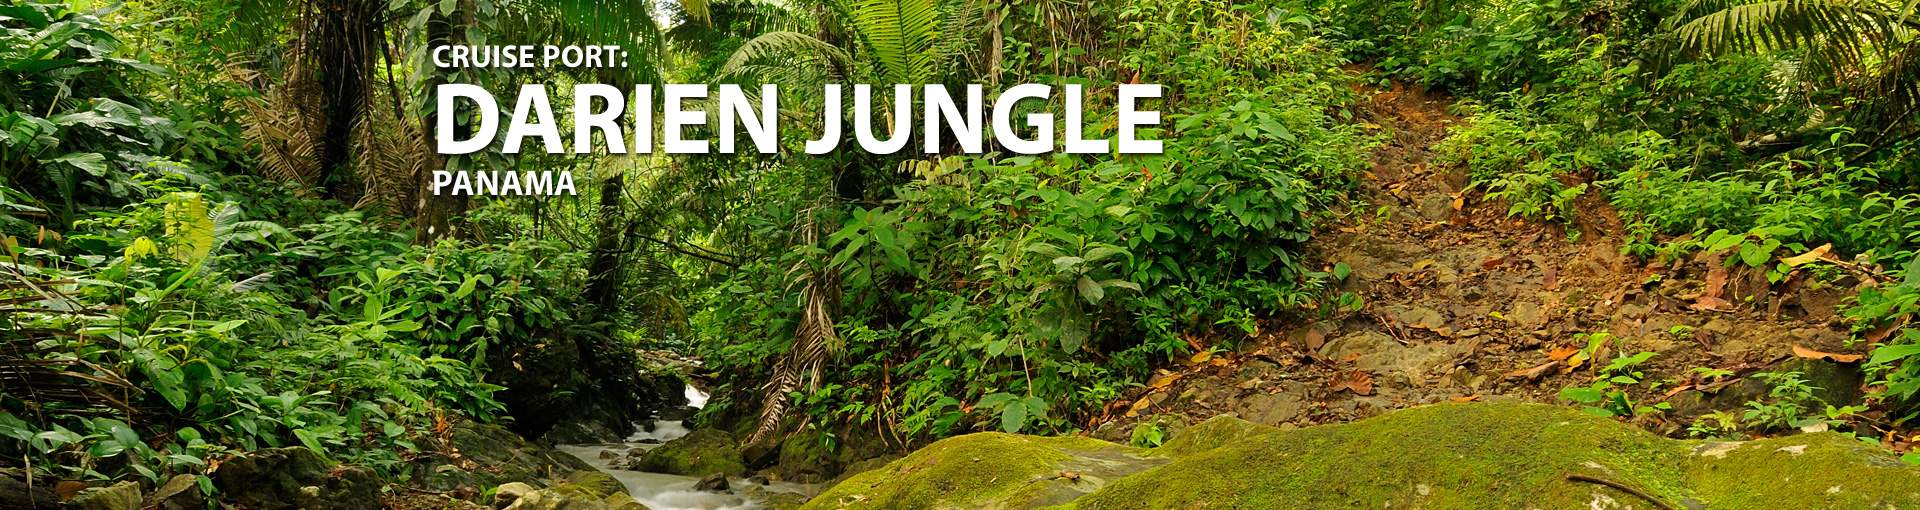 Cruises to Darien Jungle, Panama